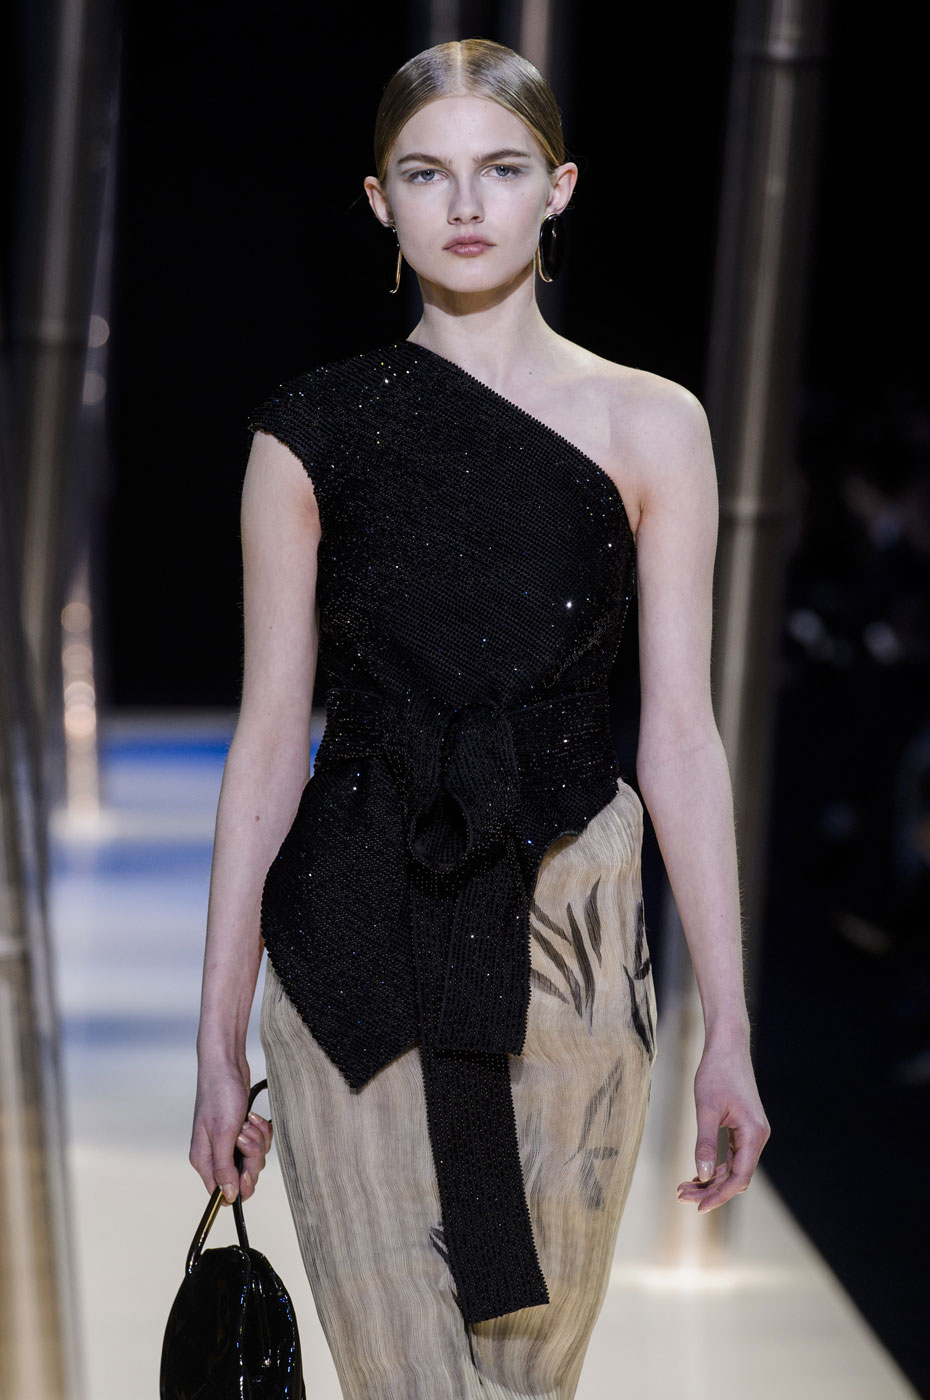 Giorgio-armani-Prive-fashion-runway-show-haute-couture-paris-spring-2015-the-impression-090